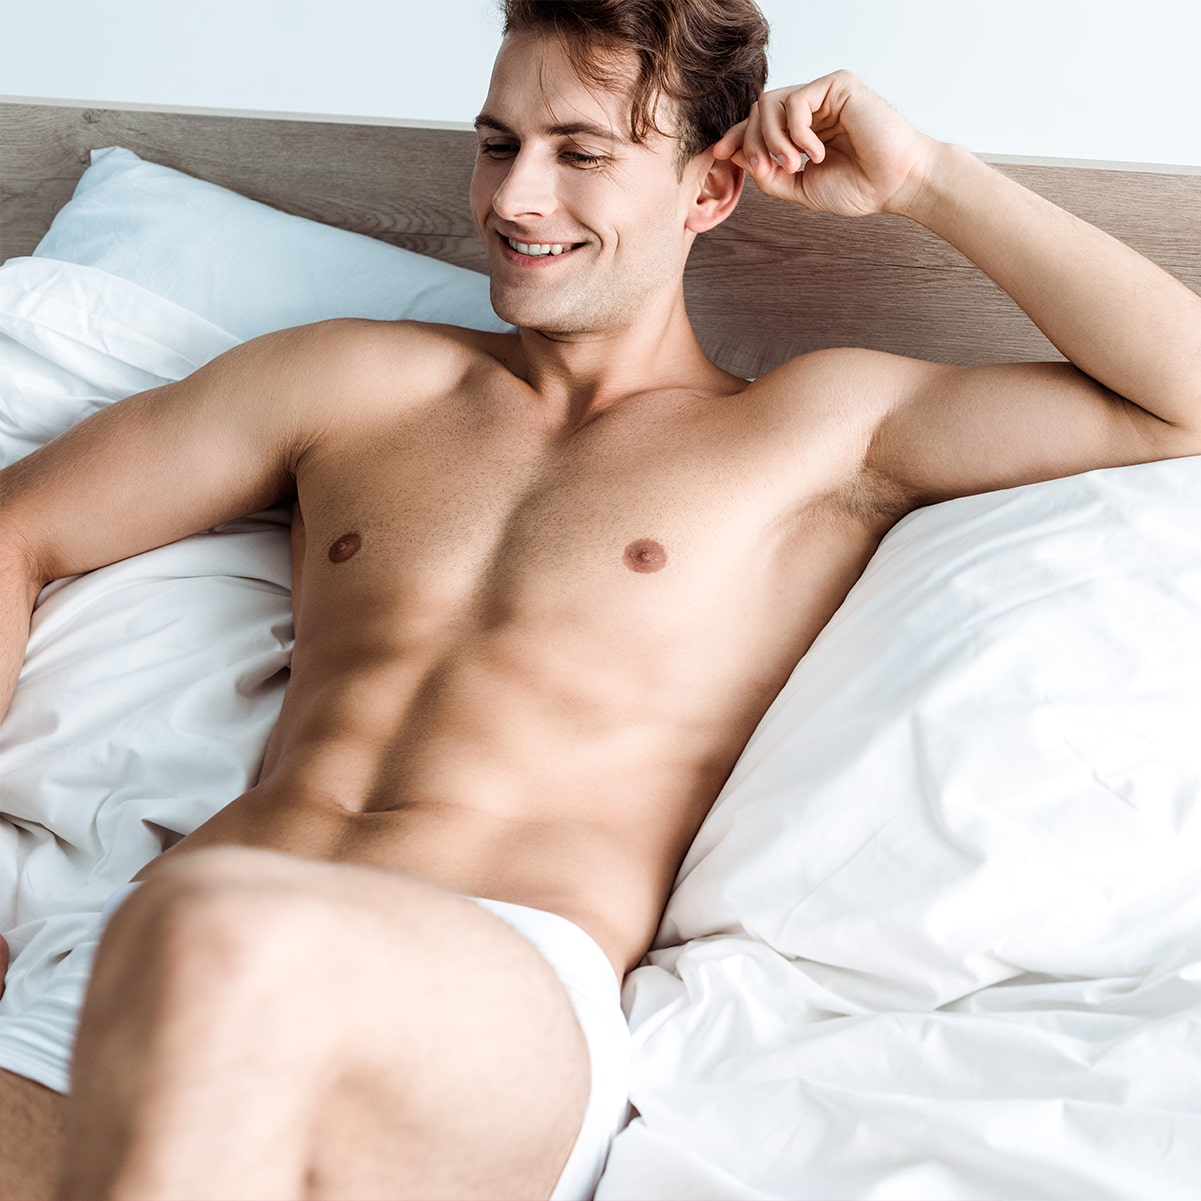 Best Gay Vibrating Butt Plugs to Try